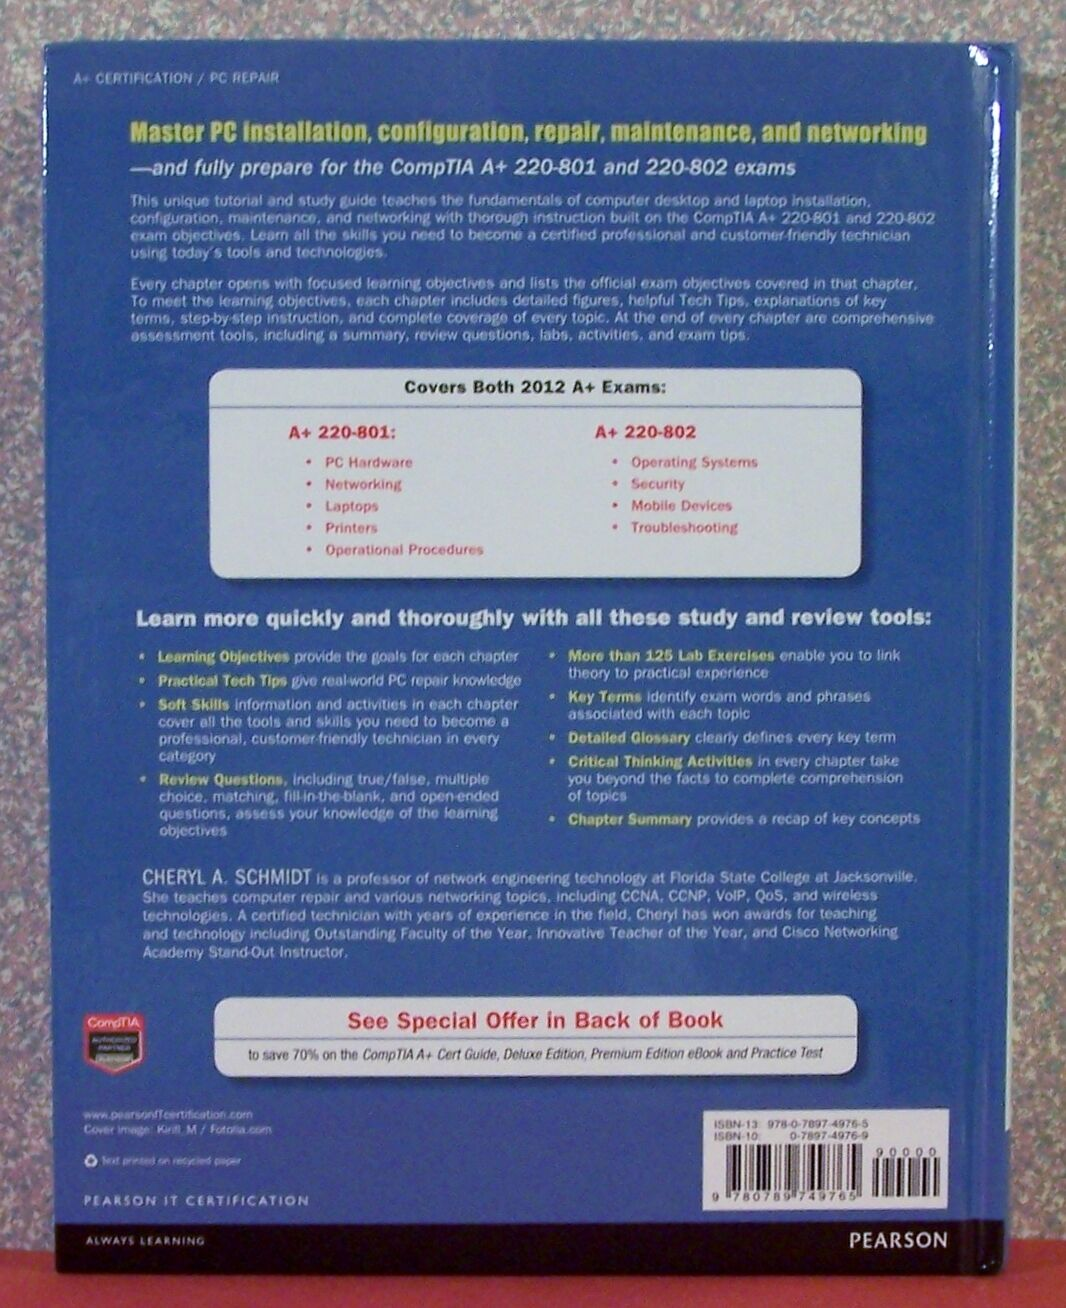 Complete comptia a guide to pcs by cheryl a schmidt 2013 resntentobalflowflowcomponentncel fandeluxe Image collections